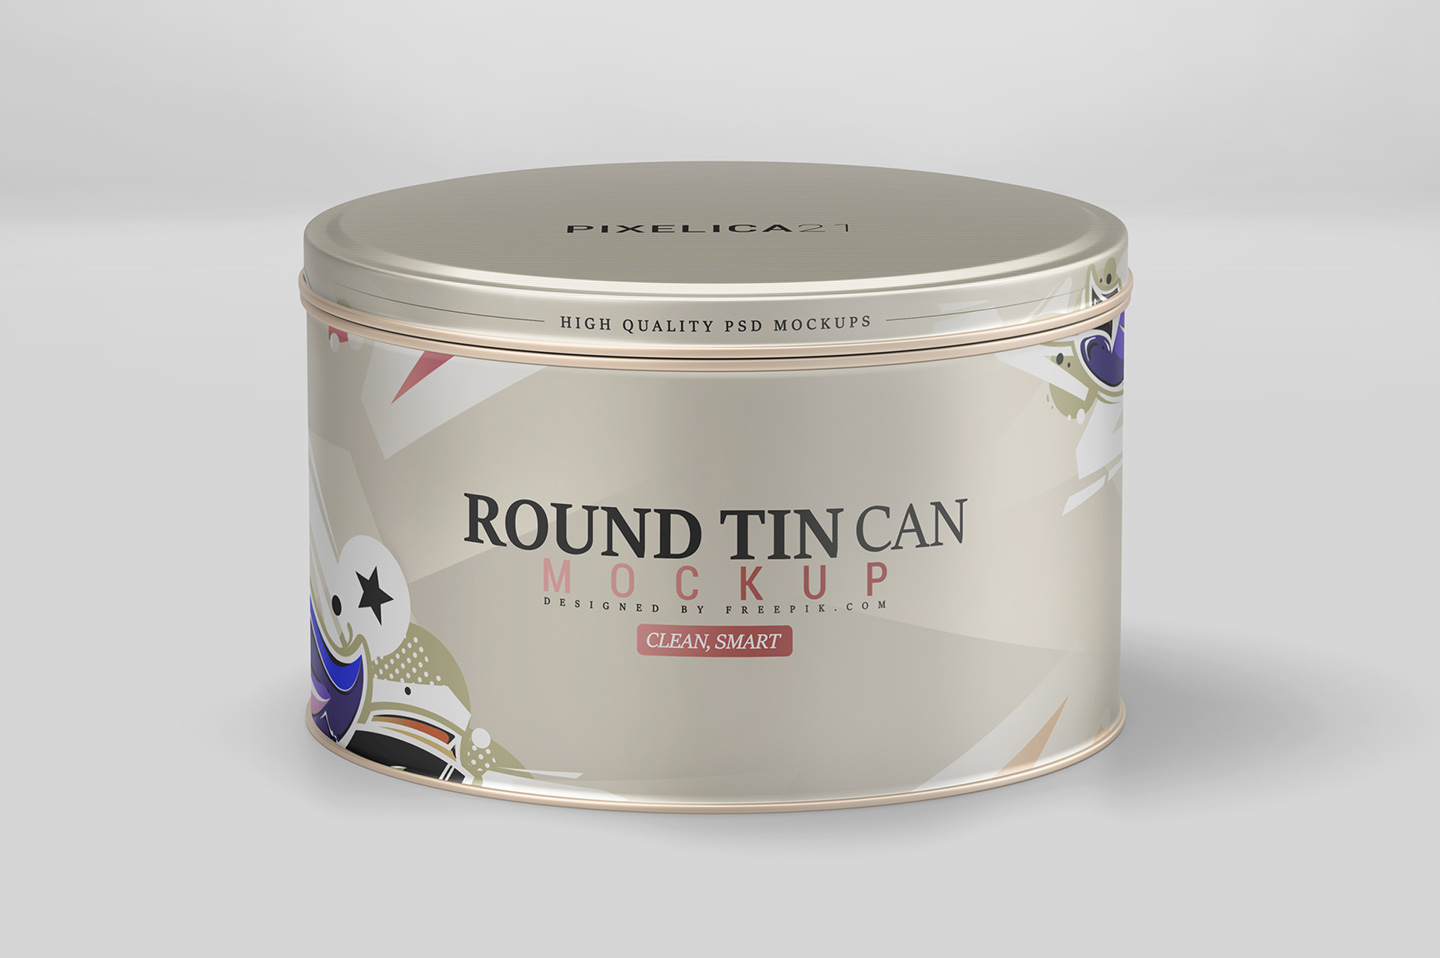 Round Tin Can Mockup example image 7